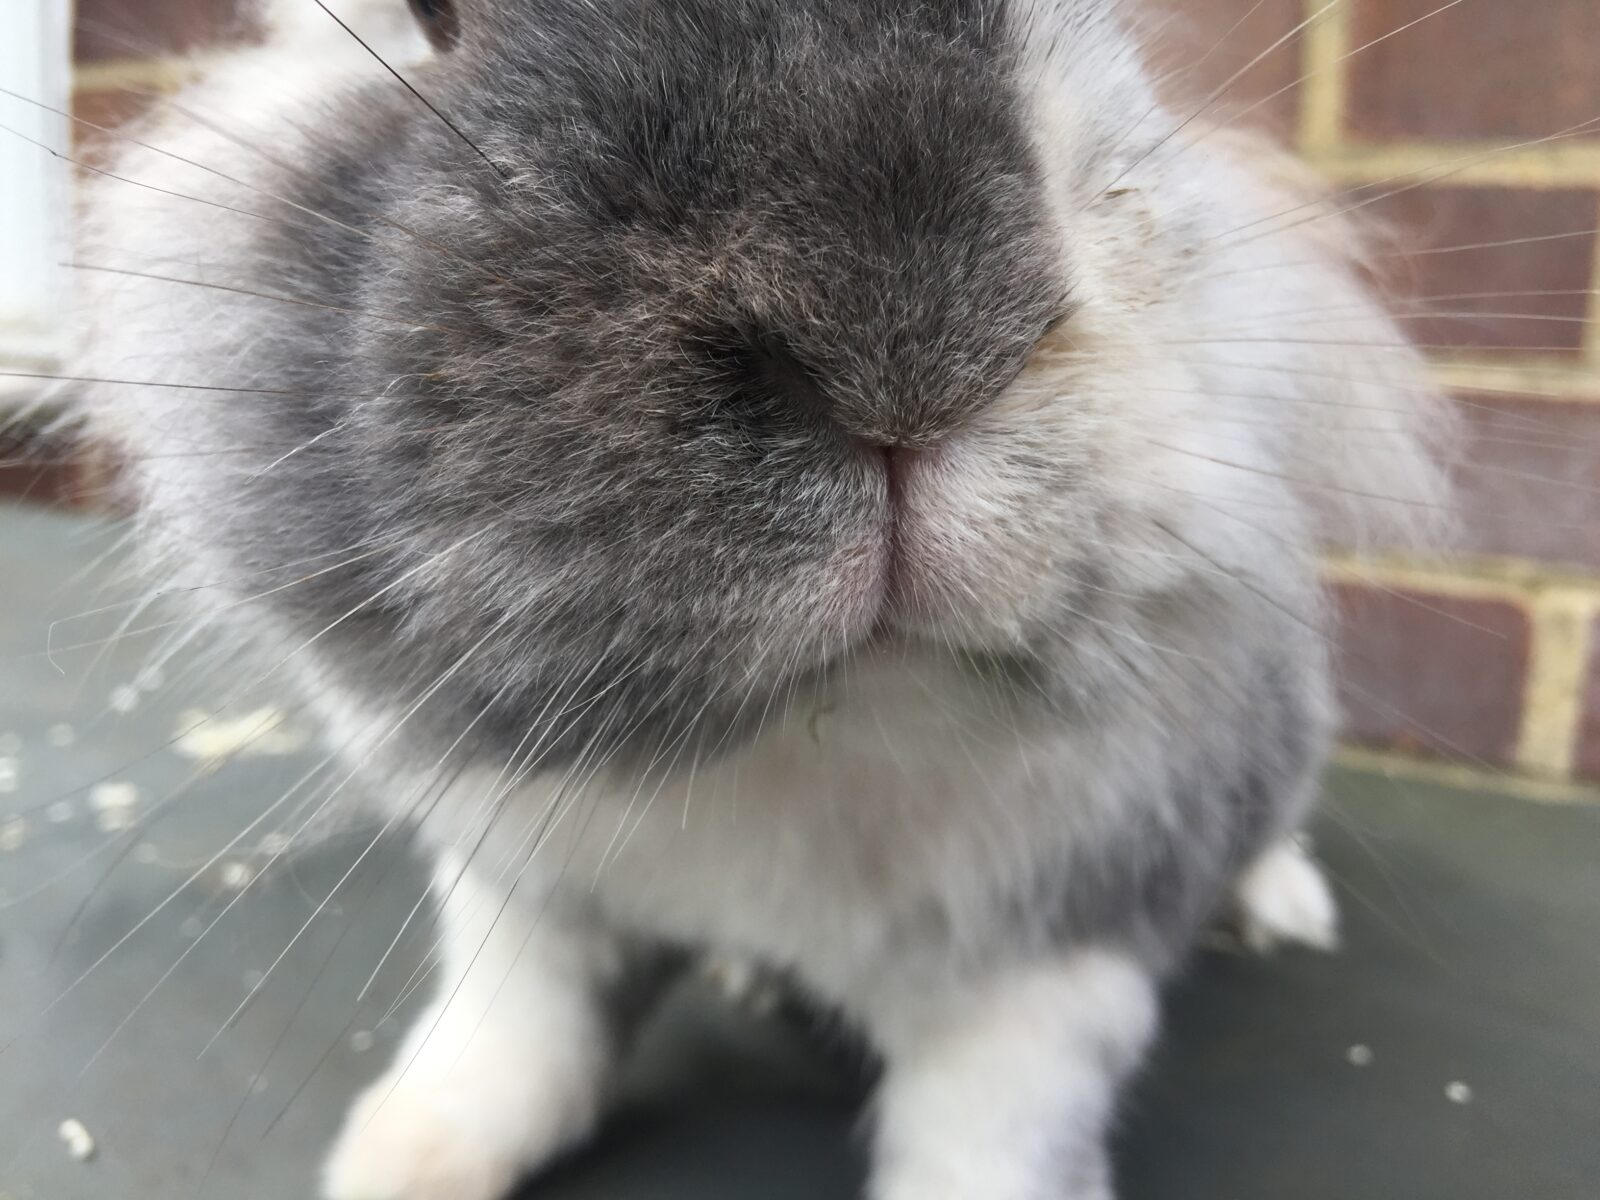 How To Give Your Rabbit a Health Check Image shows a rabbits nose that is clean and healthy looking